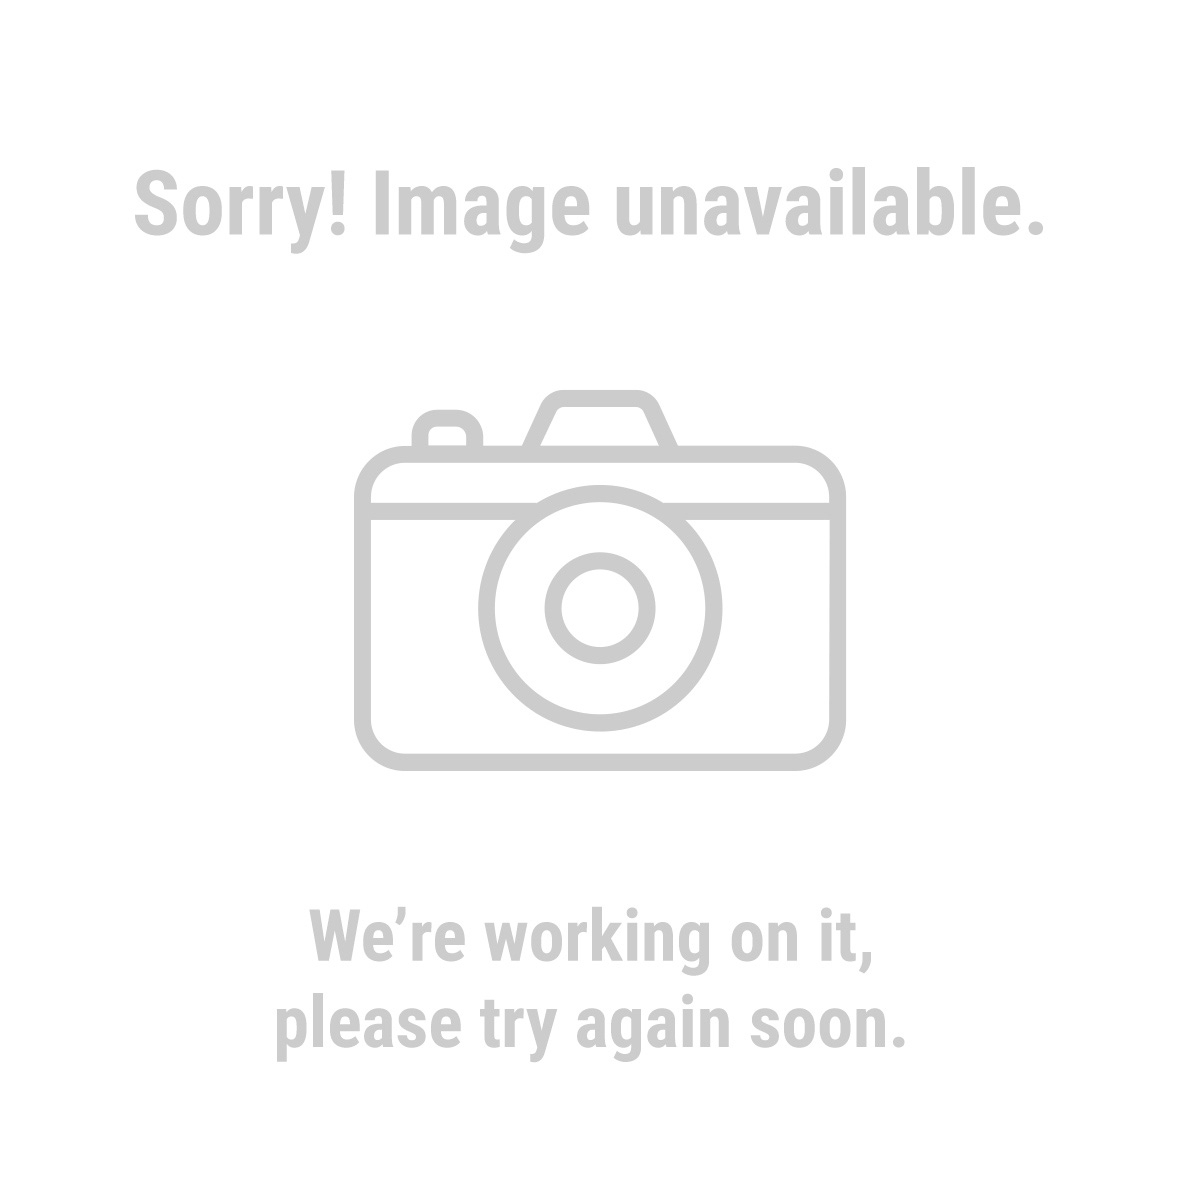 HFT 61390 60 ft. x 3/4 in.  Industrial Grade Electrical Tape